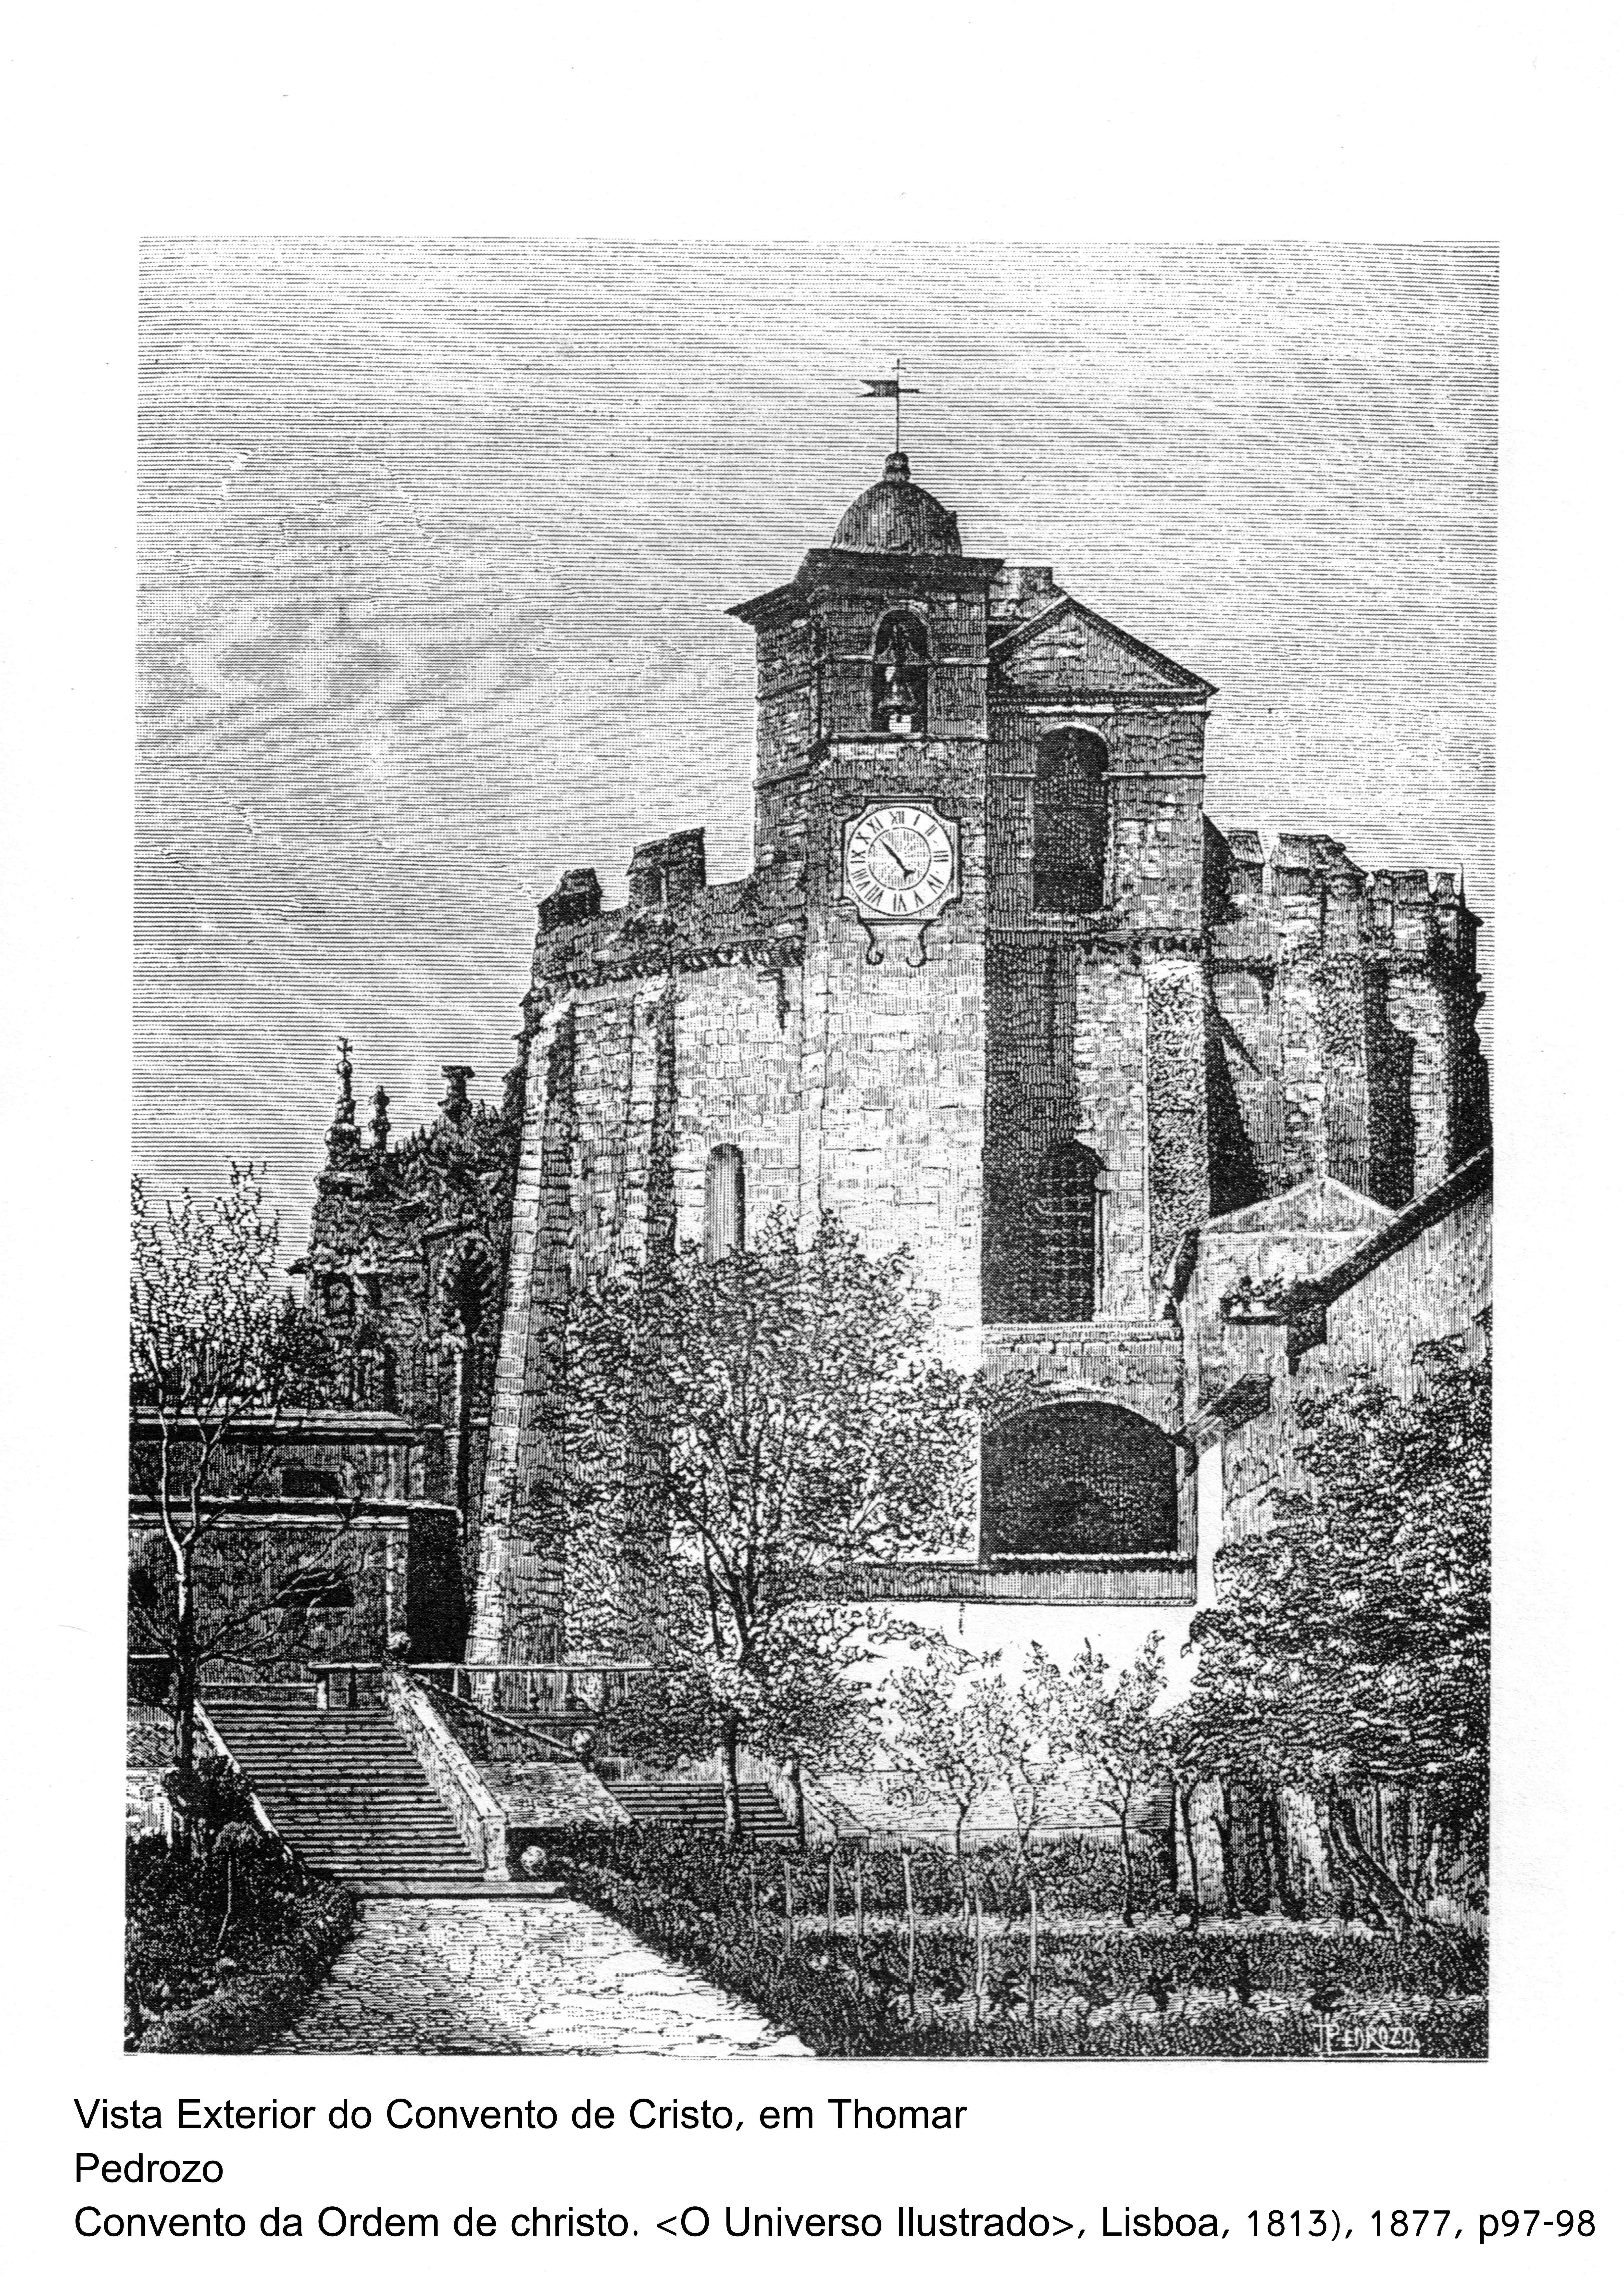 Exterior view of the Convent of Christ, John Pedroso 1813 in The Universe Illustrated, 1871